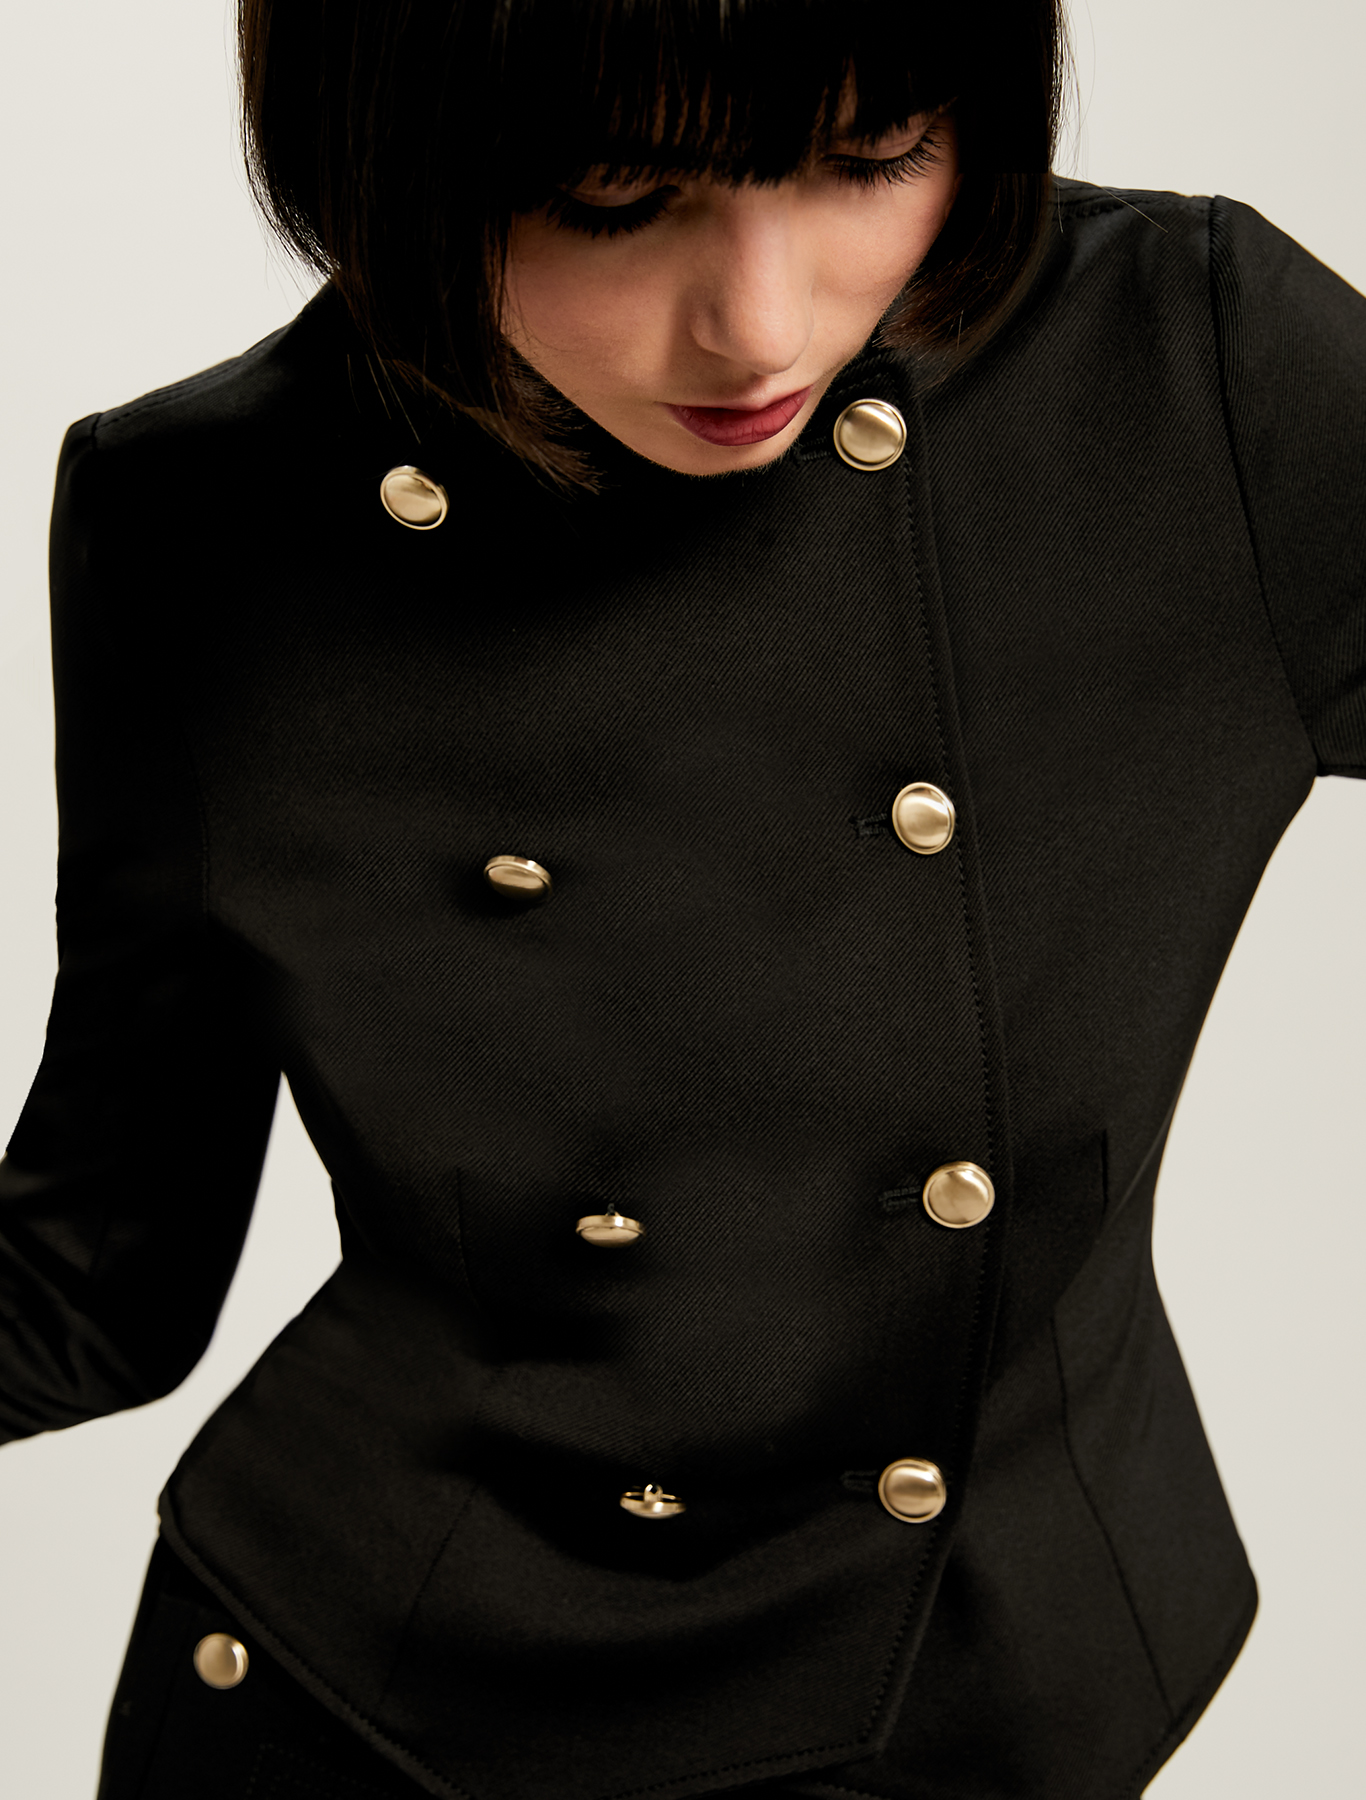 Double-breasted jersey tailcoat - black - pennyblack